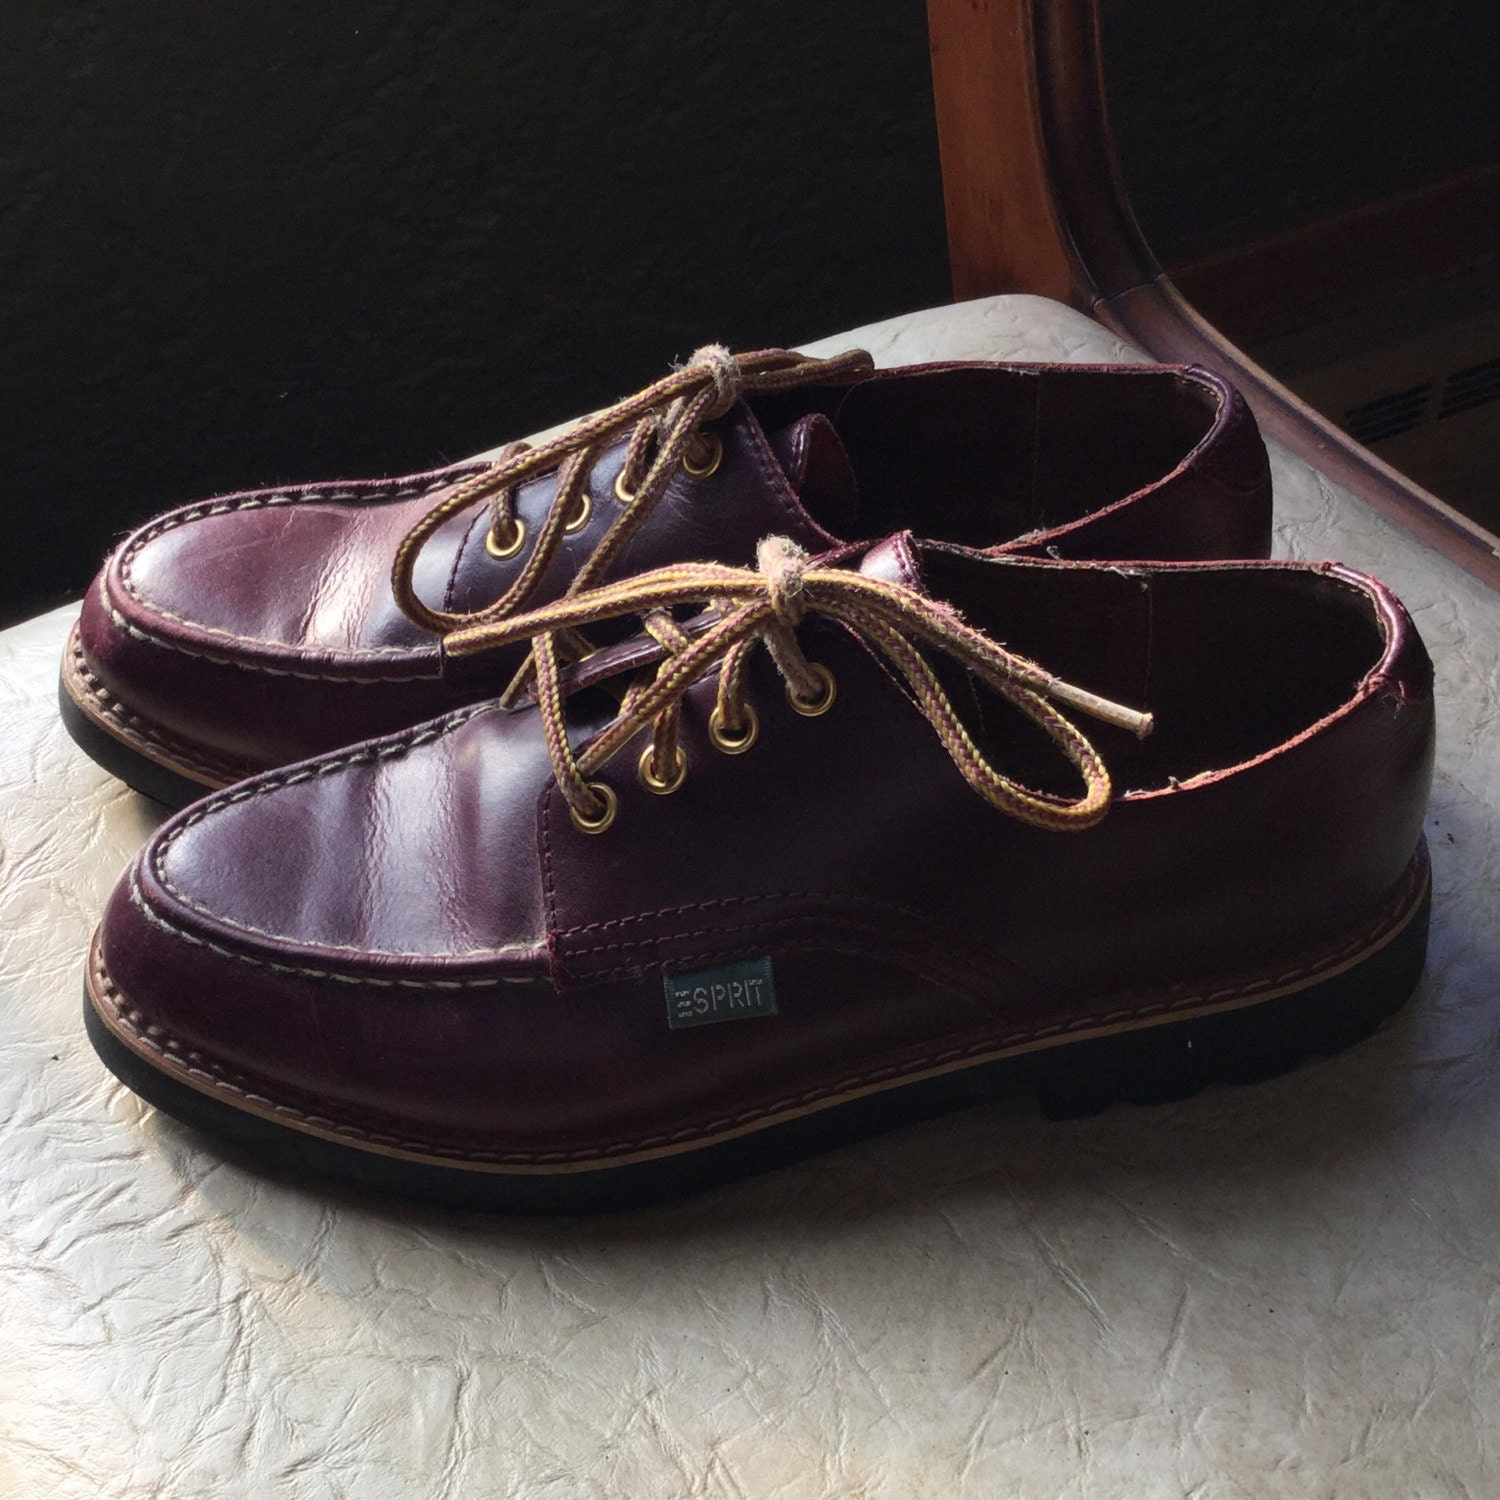 esprit footware burgundy brown leather shoes 90s shoes. Black Bedroom Furniture Sets. Home Design Ideas